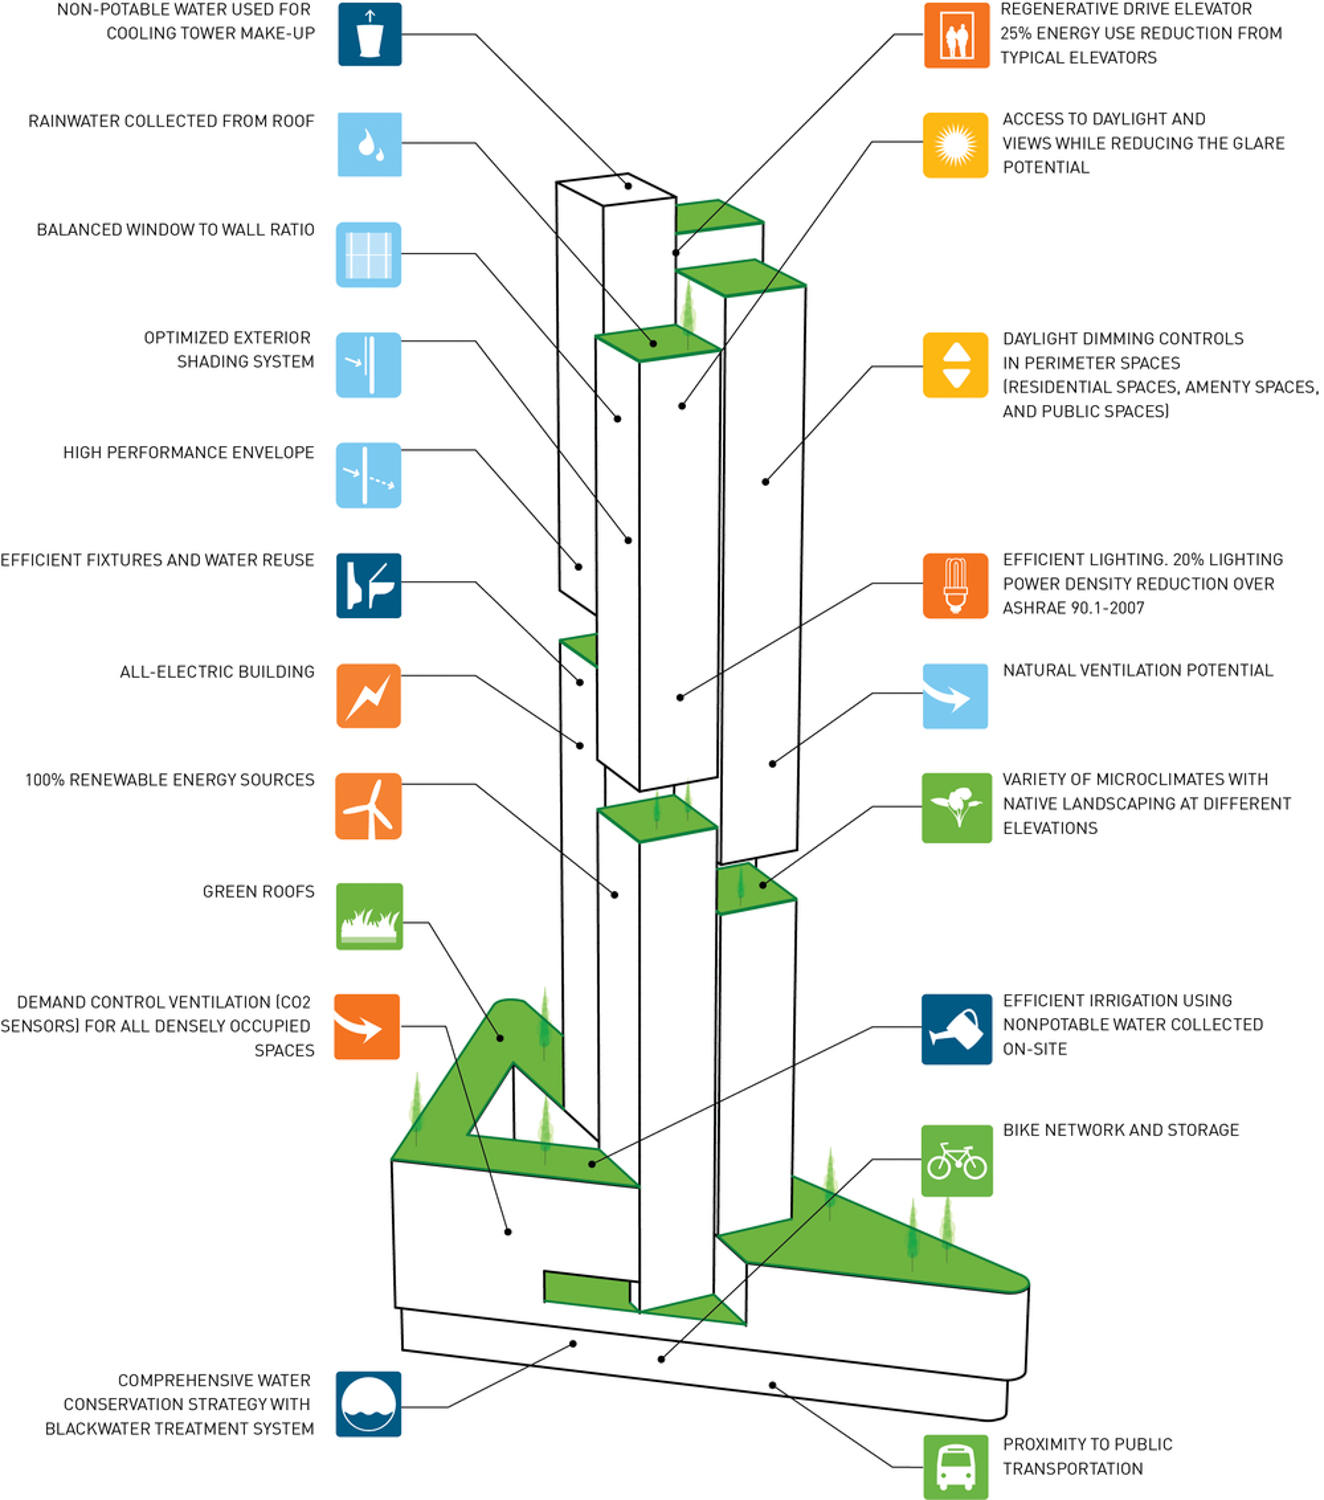 10 South Van Ness Avenue sustainable features, image via Crescent Heights